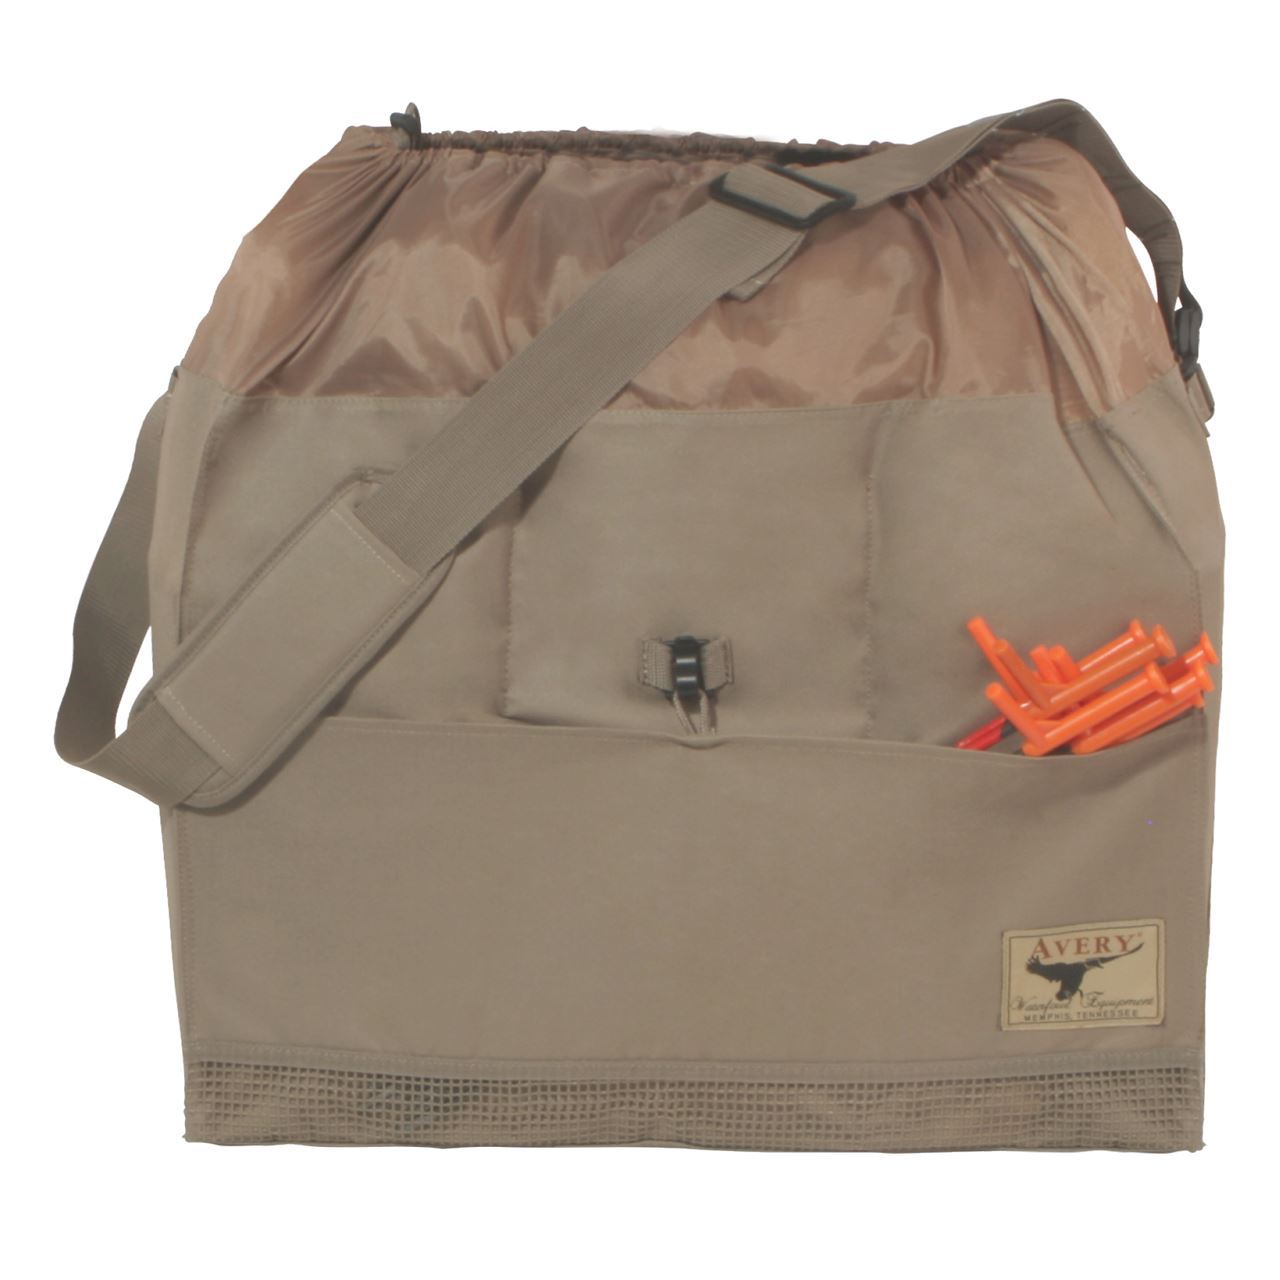 Avery Outdoors 6-Slot Mid-Size Full Body Goose Bag – Khaki